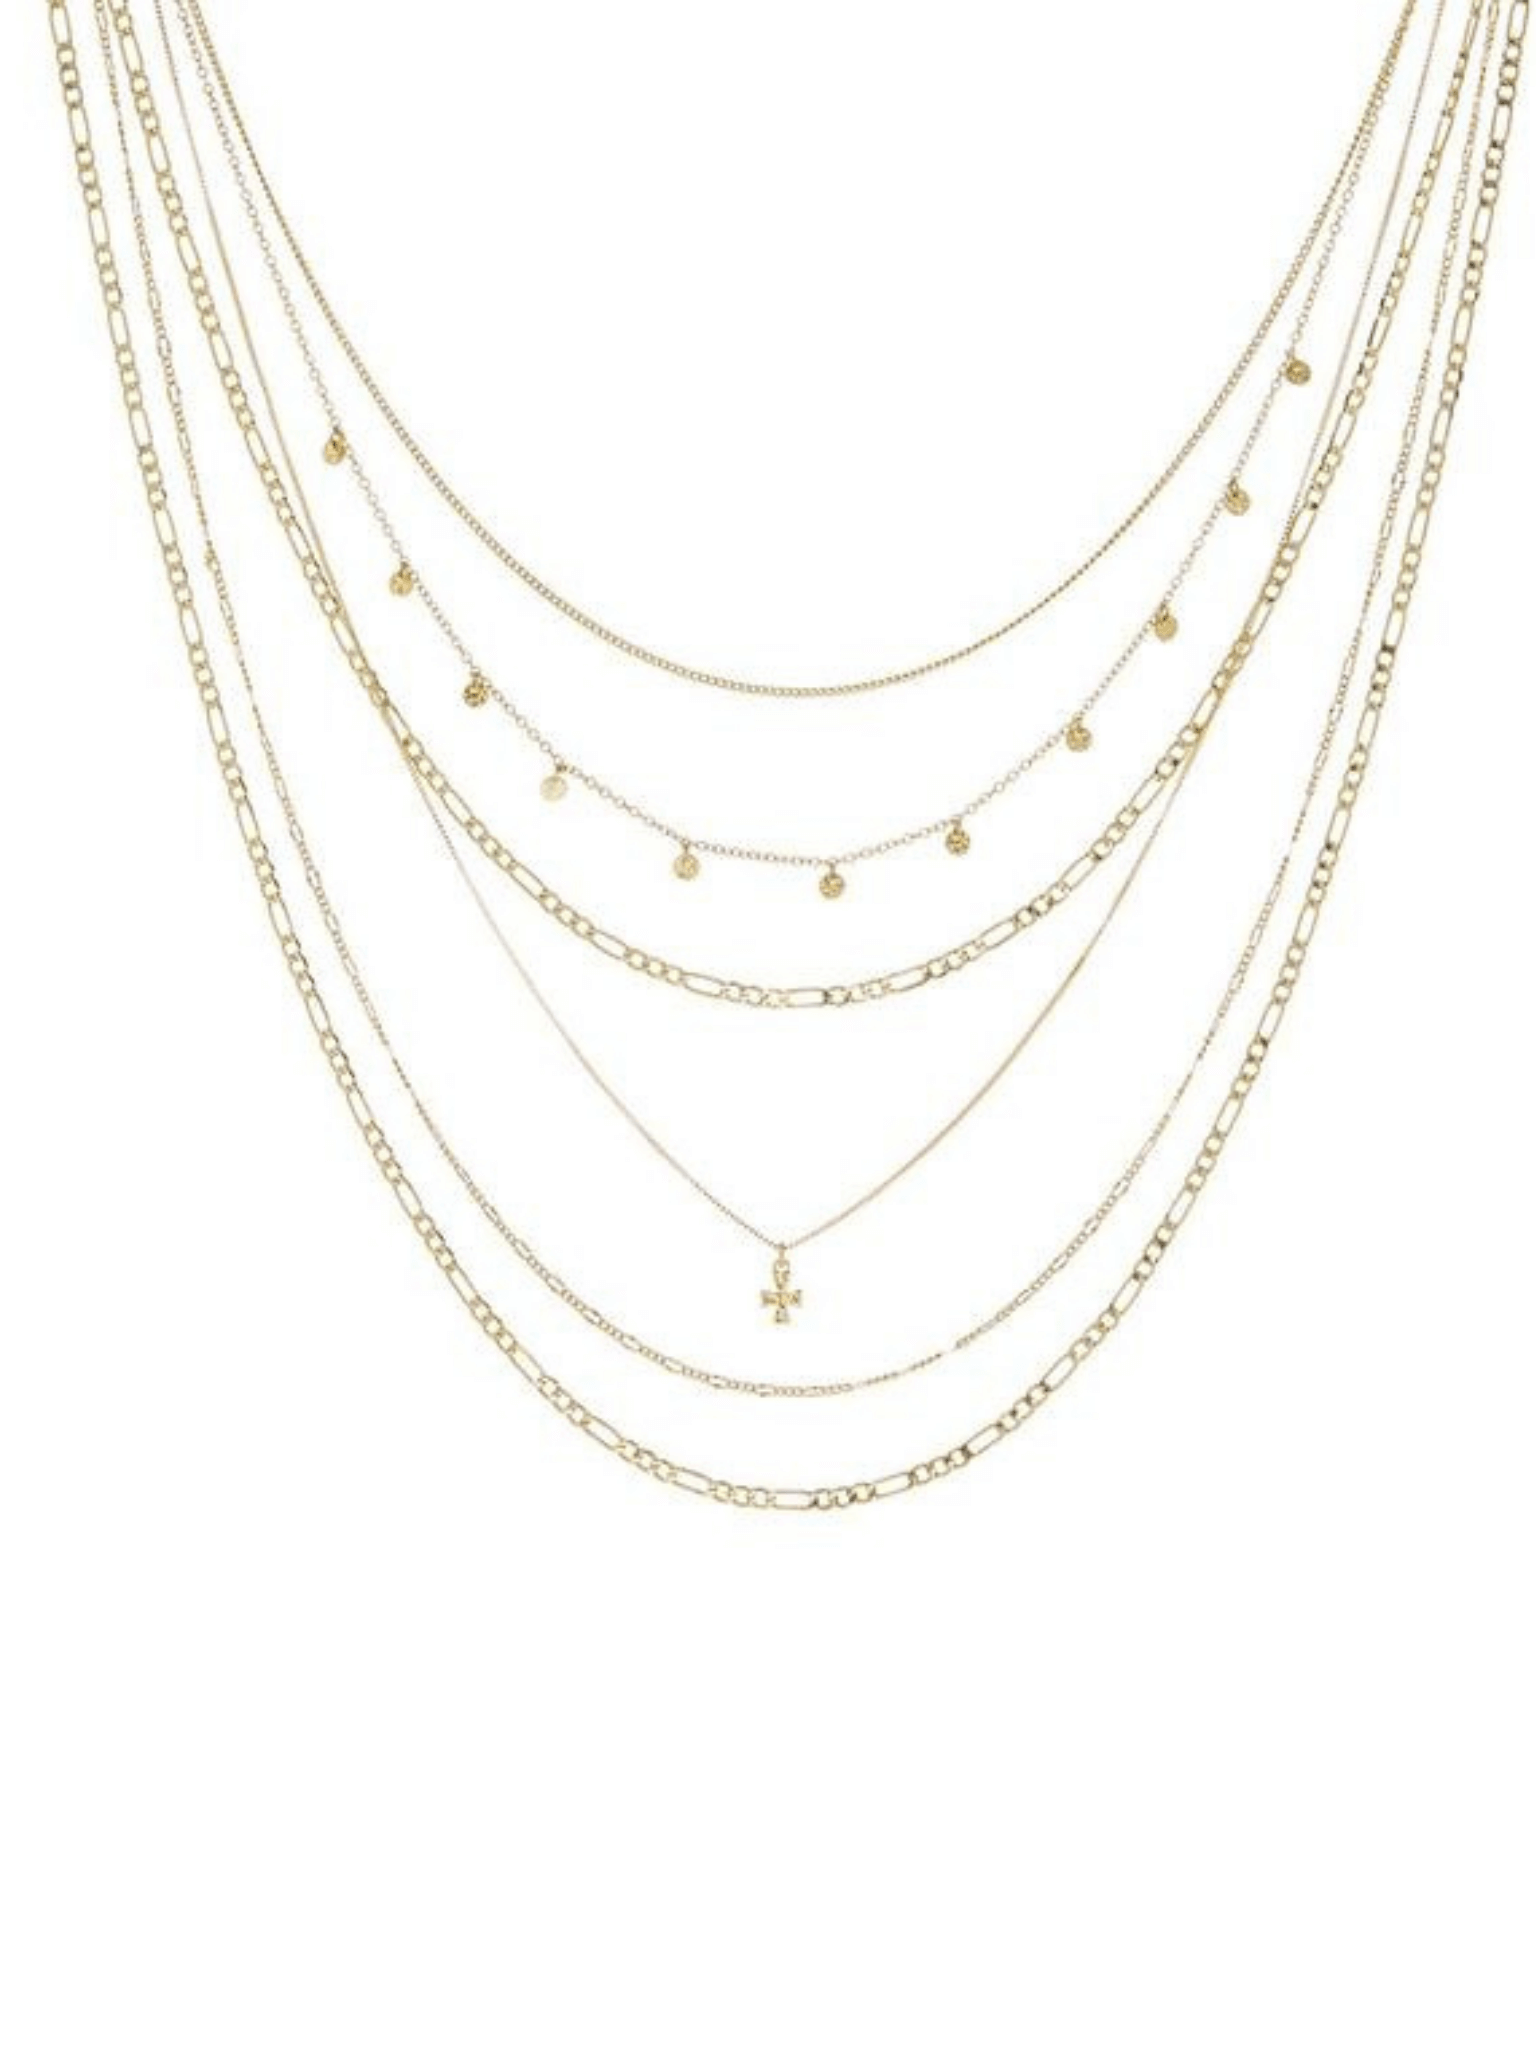 The Hammered Cross Multi Charm Necklace - Gold